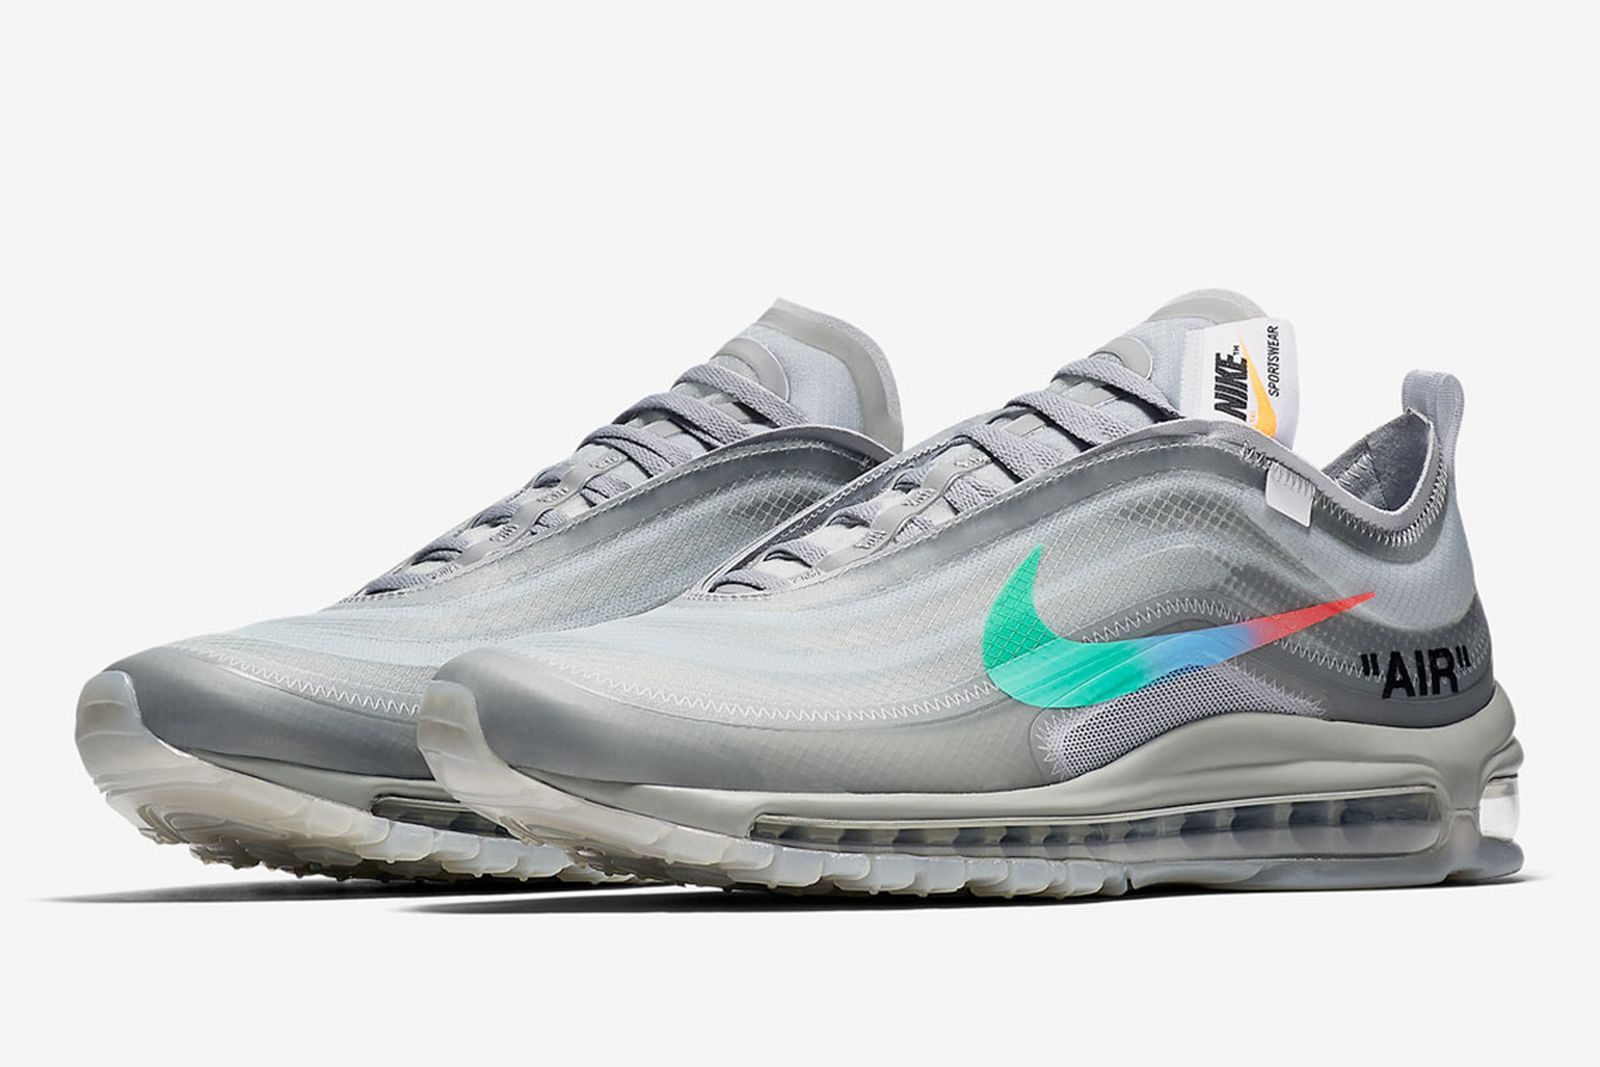 off white nike air max 97 menta release date price OFF-WHITE c/o Virgil Abloh StockX